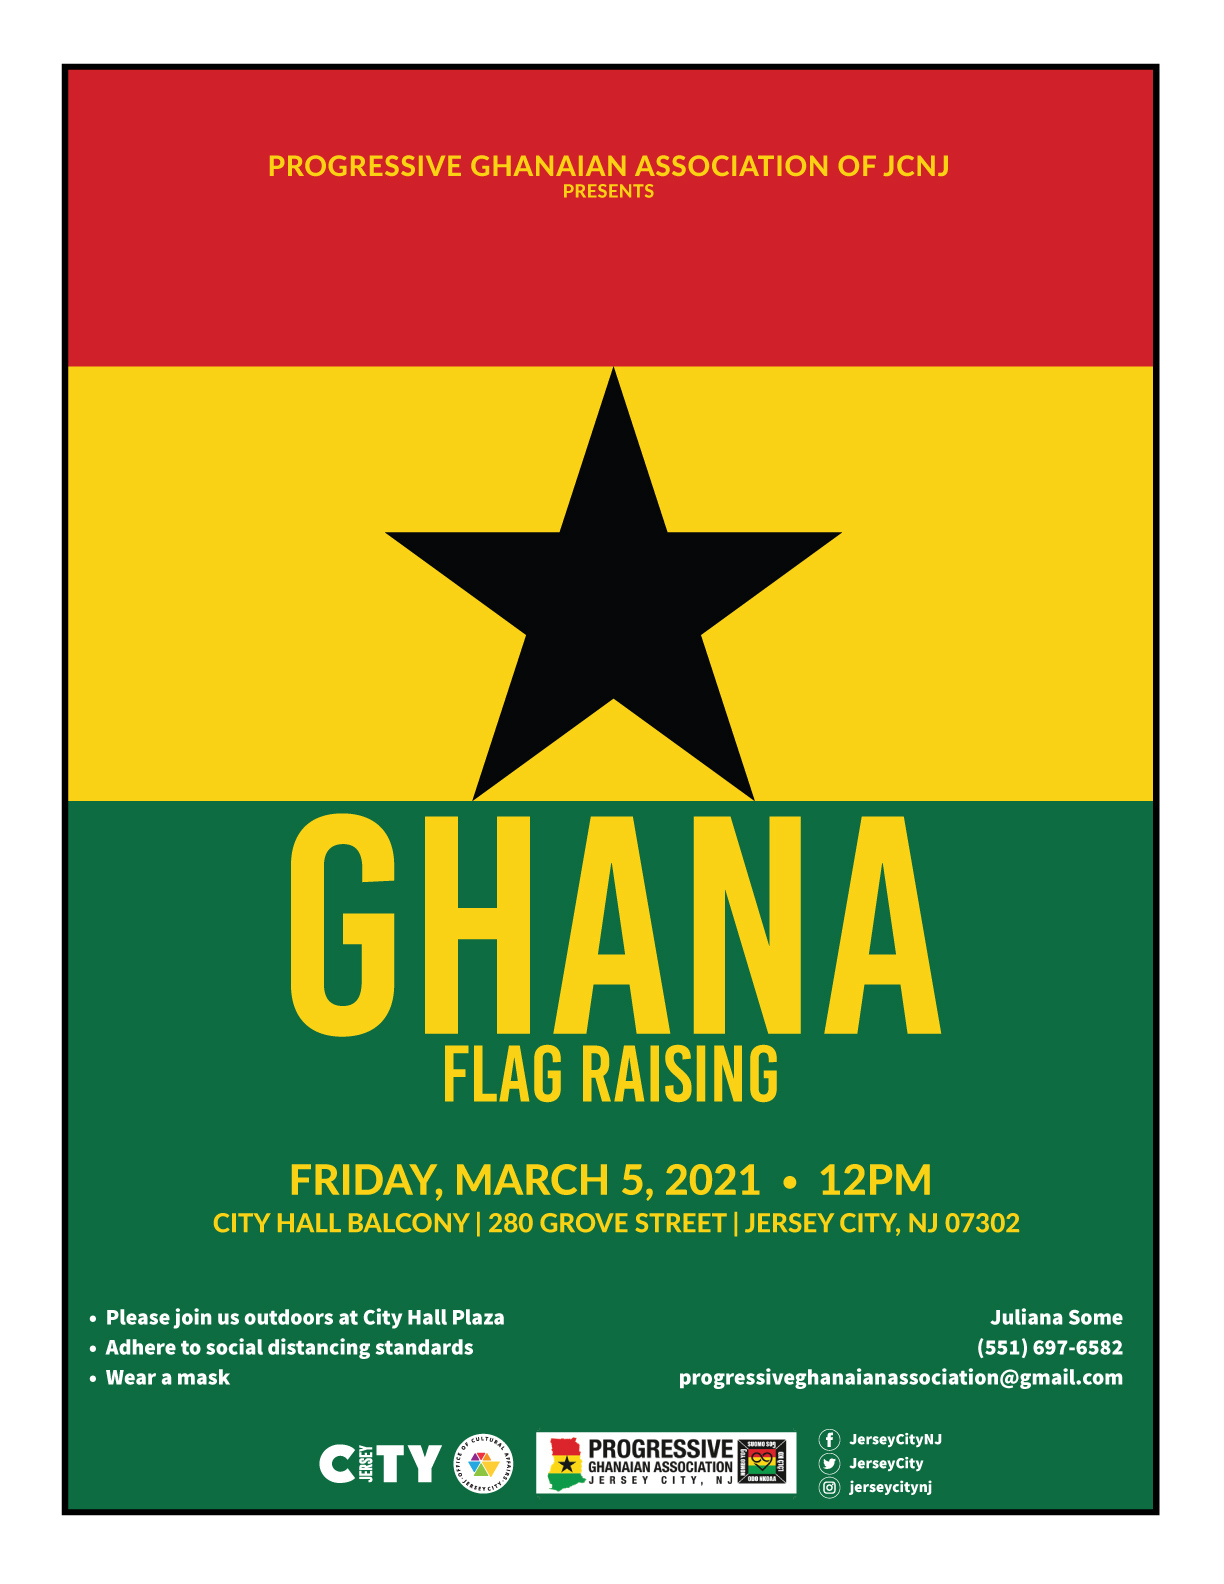 Ghana Flag raising Flyer. Backgriund is the flag. Horizontal stripes of Red, then yellow and then green. A black star is centered in the yellow. Wordage appears detailing event.